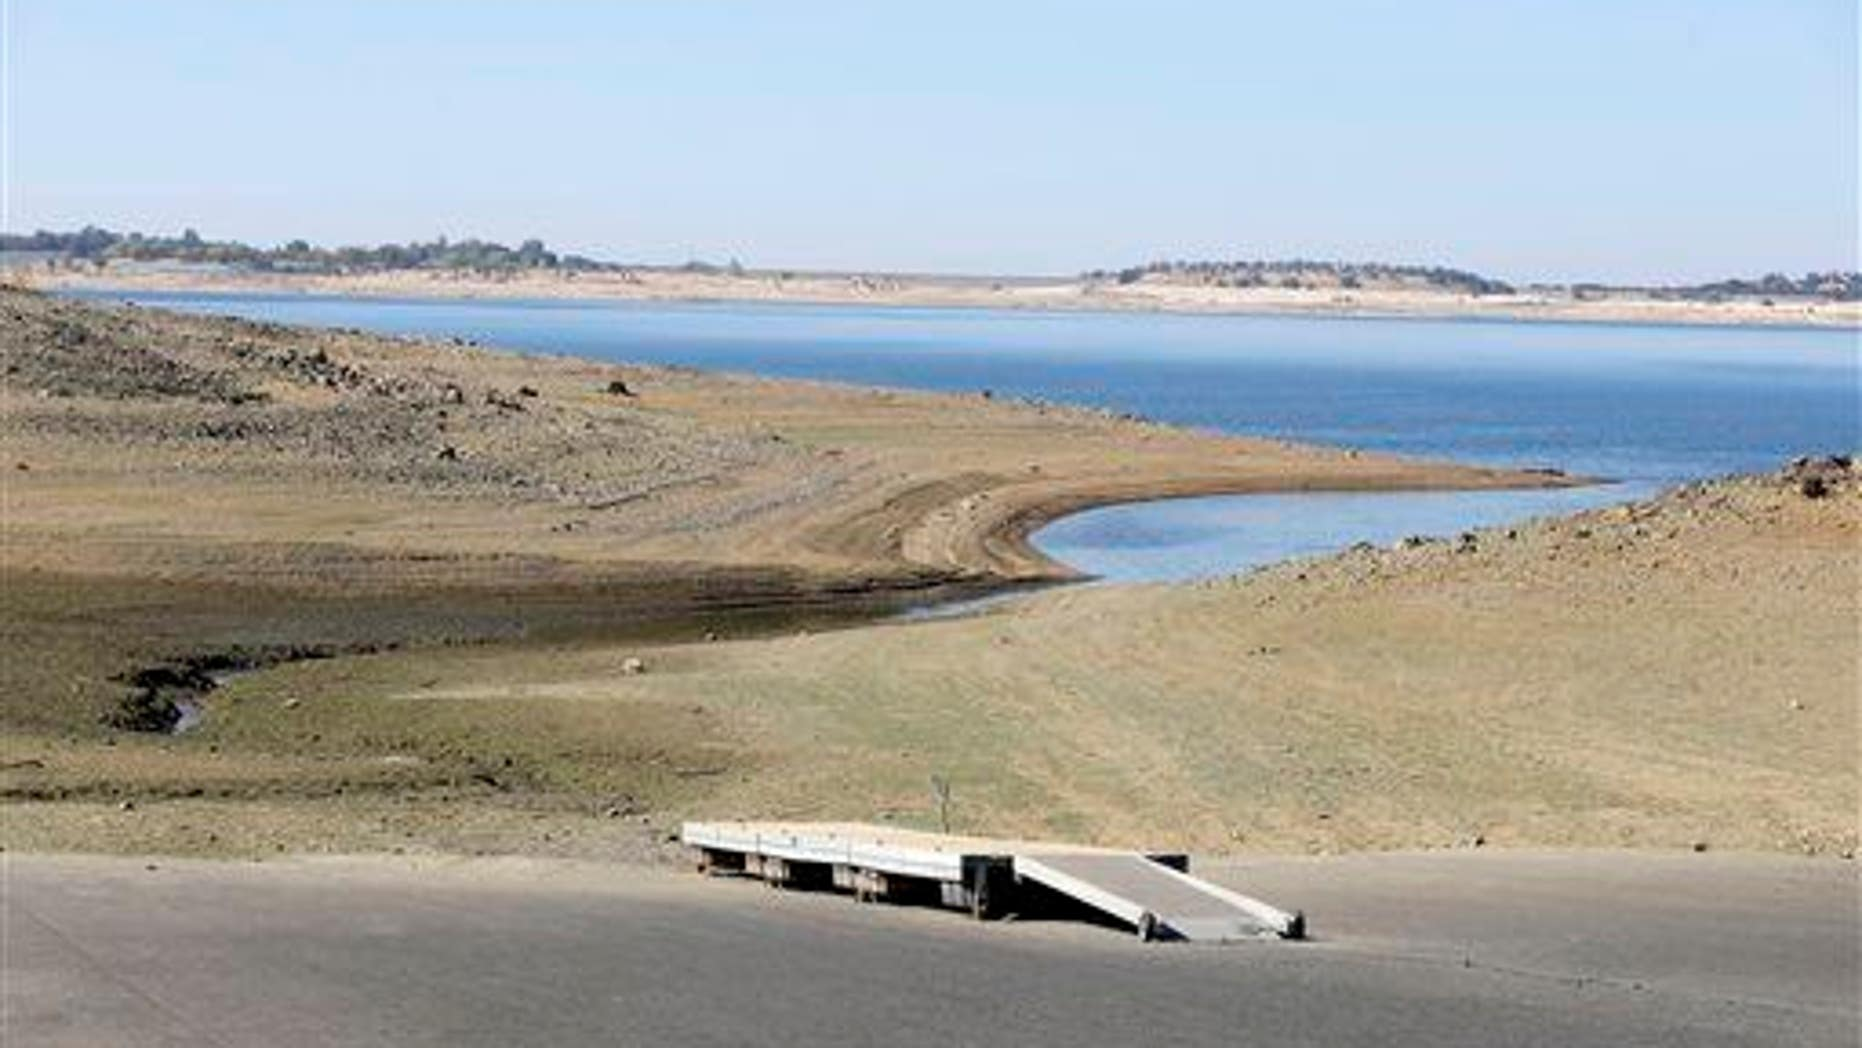 This October 2014 photo shows the impact of California's ongoing drought on Folsom Lake. In the year since, things have only gotten worse.